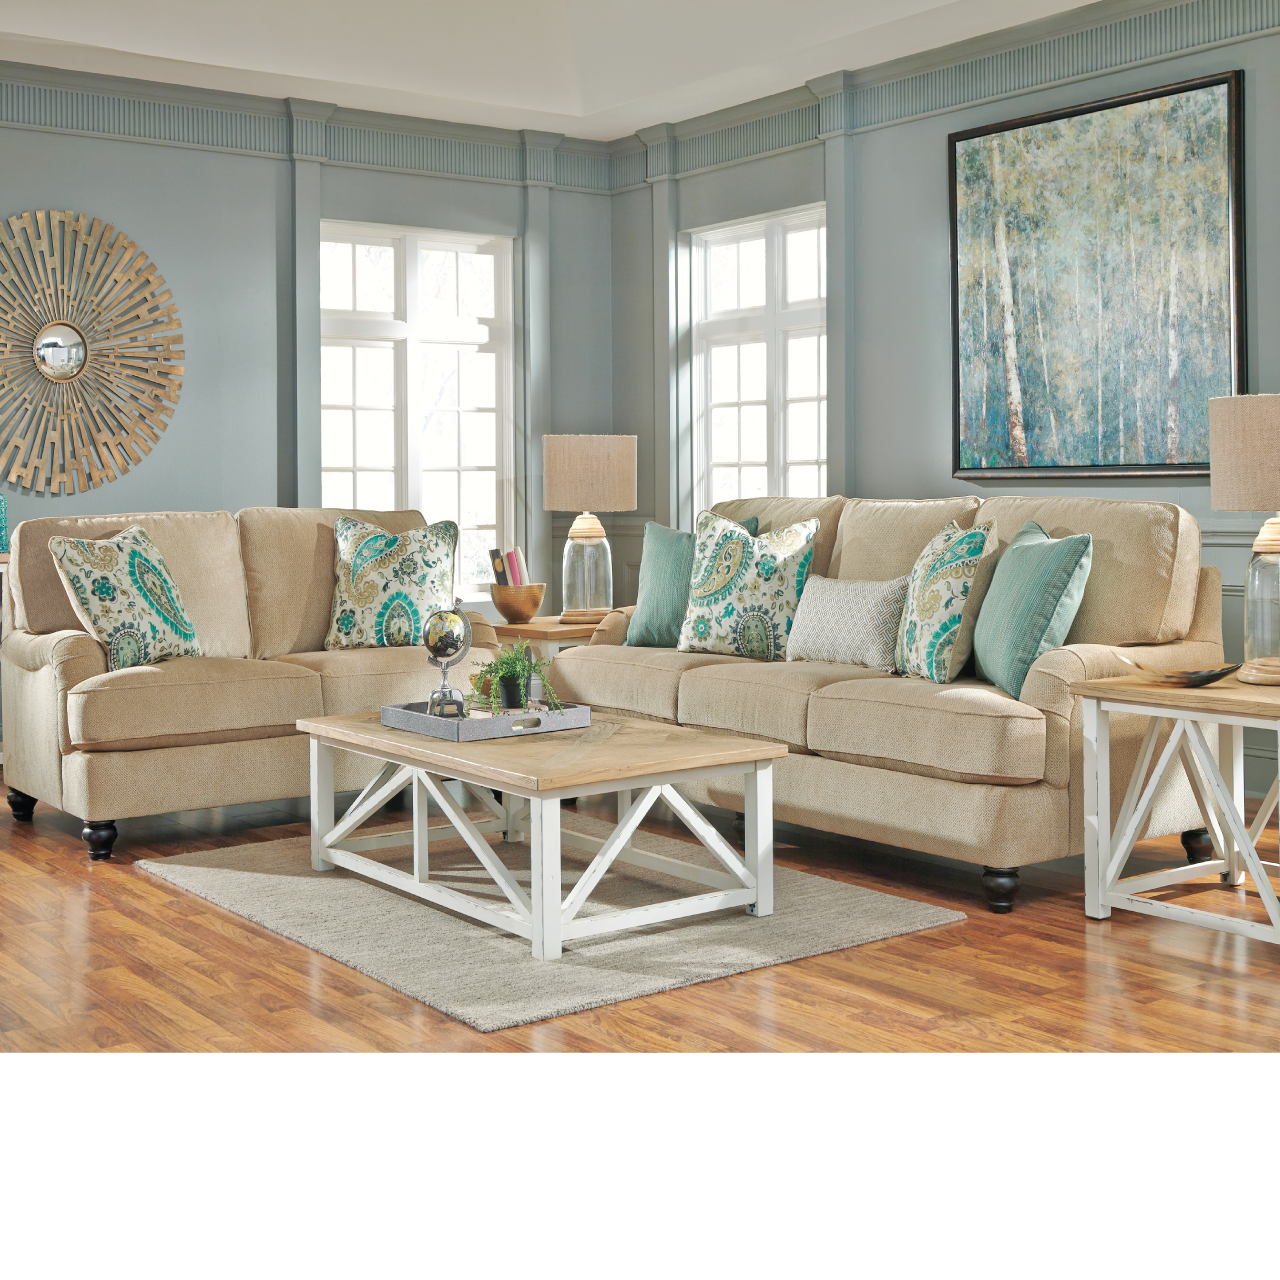 Coastal living room ideas lochian sofa by ashley Living room furniture design ideas